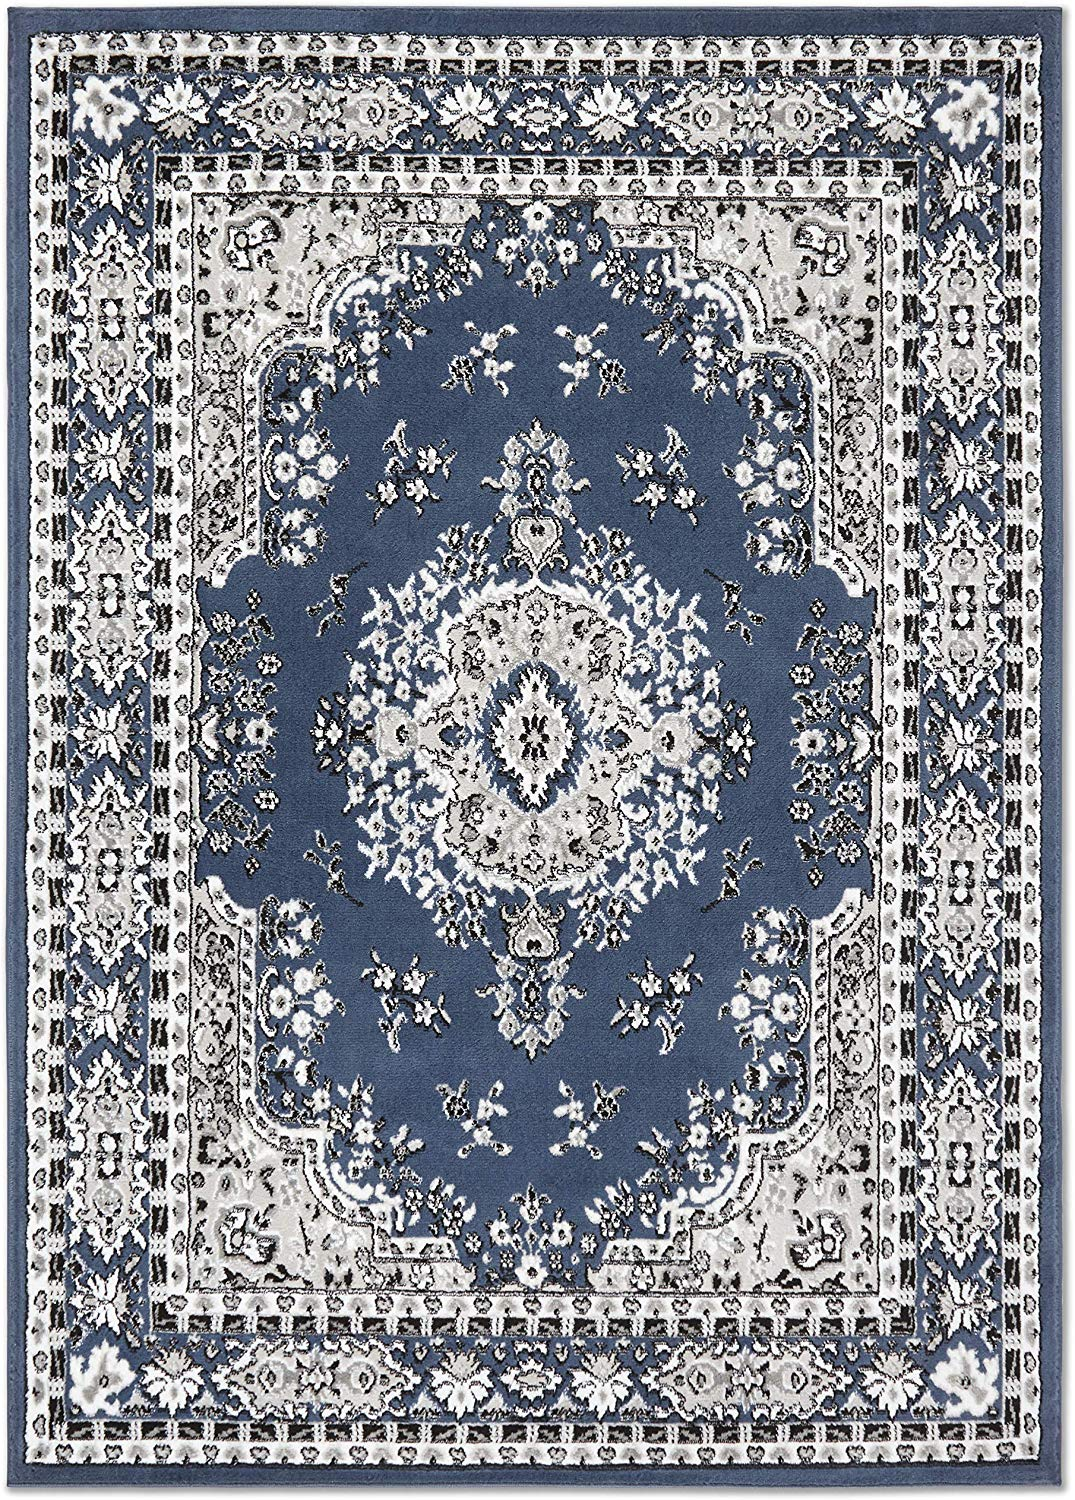 Large-Traditional-8x11-Oriental-Area-Rug-Persien-Style-Carpet-Approx-7-039-8-034-x10-039-8-034 thumbnail 13